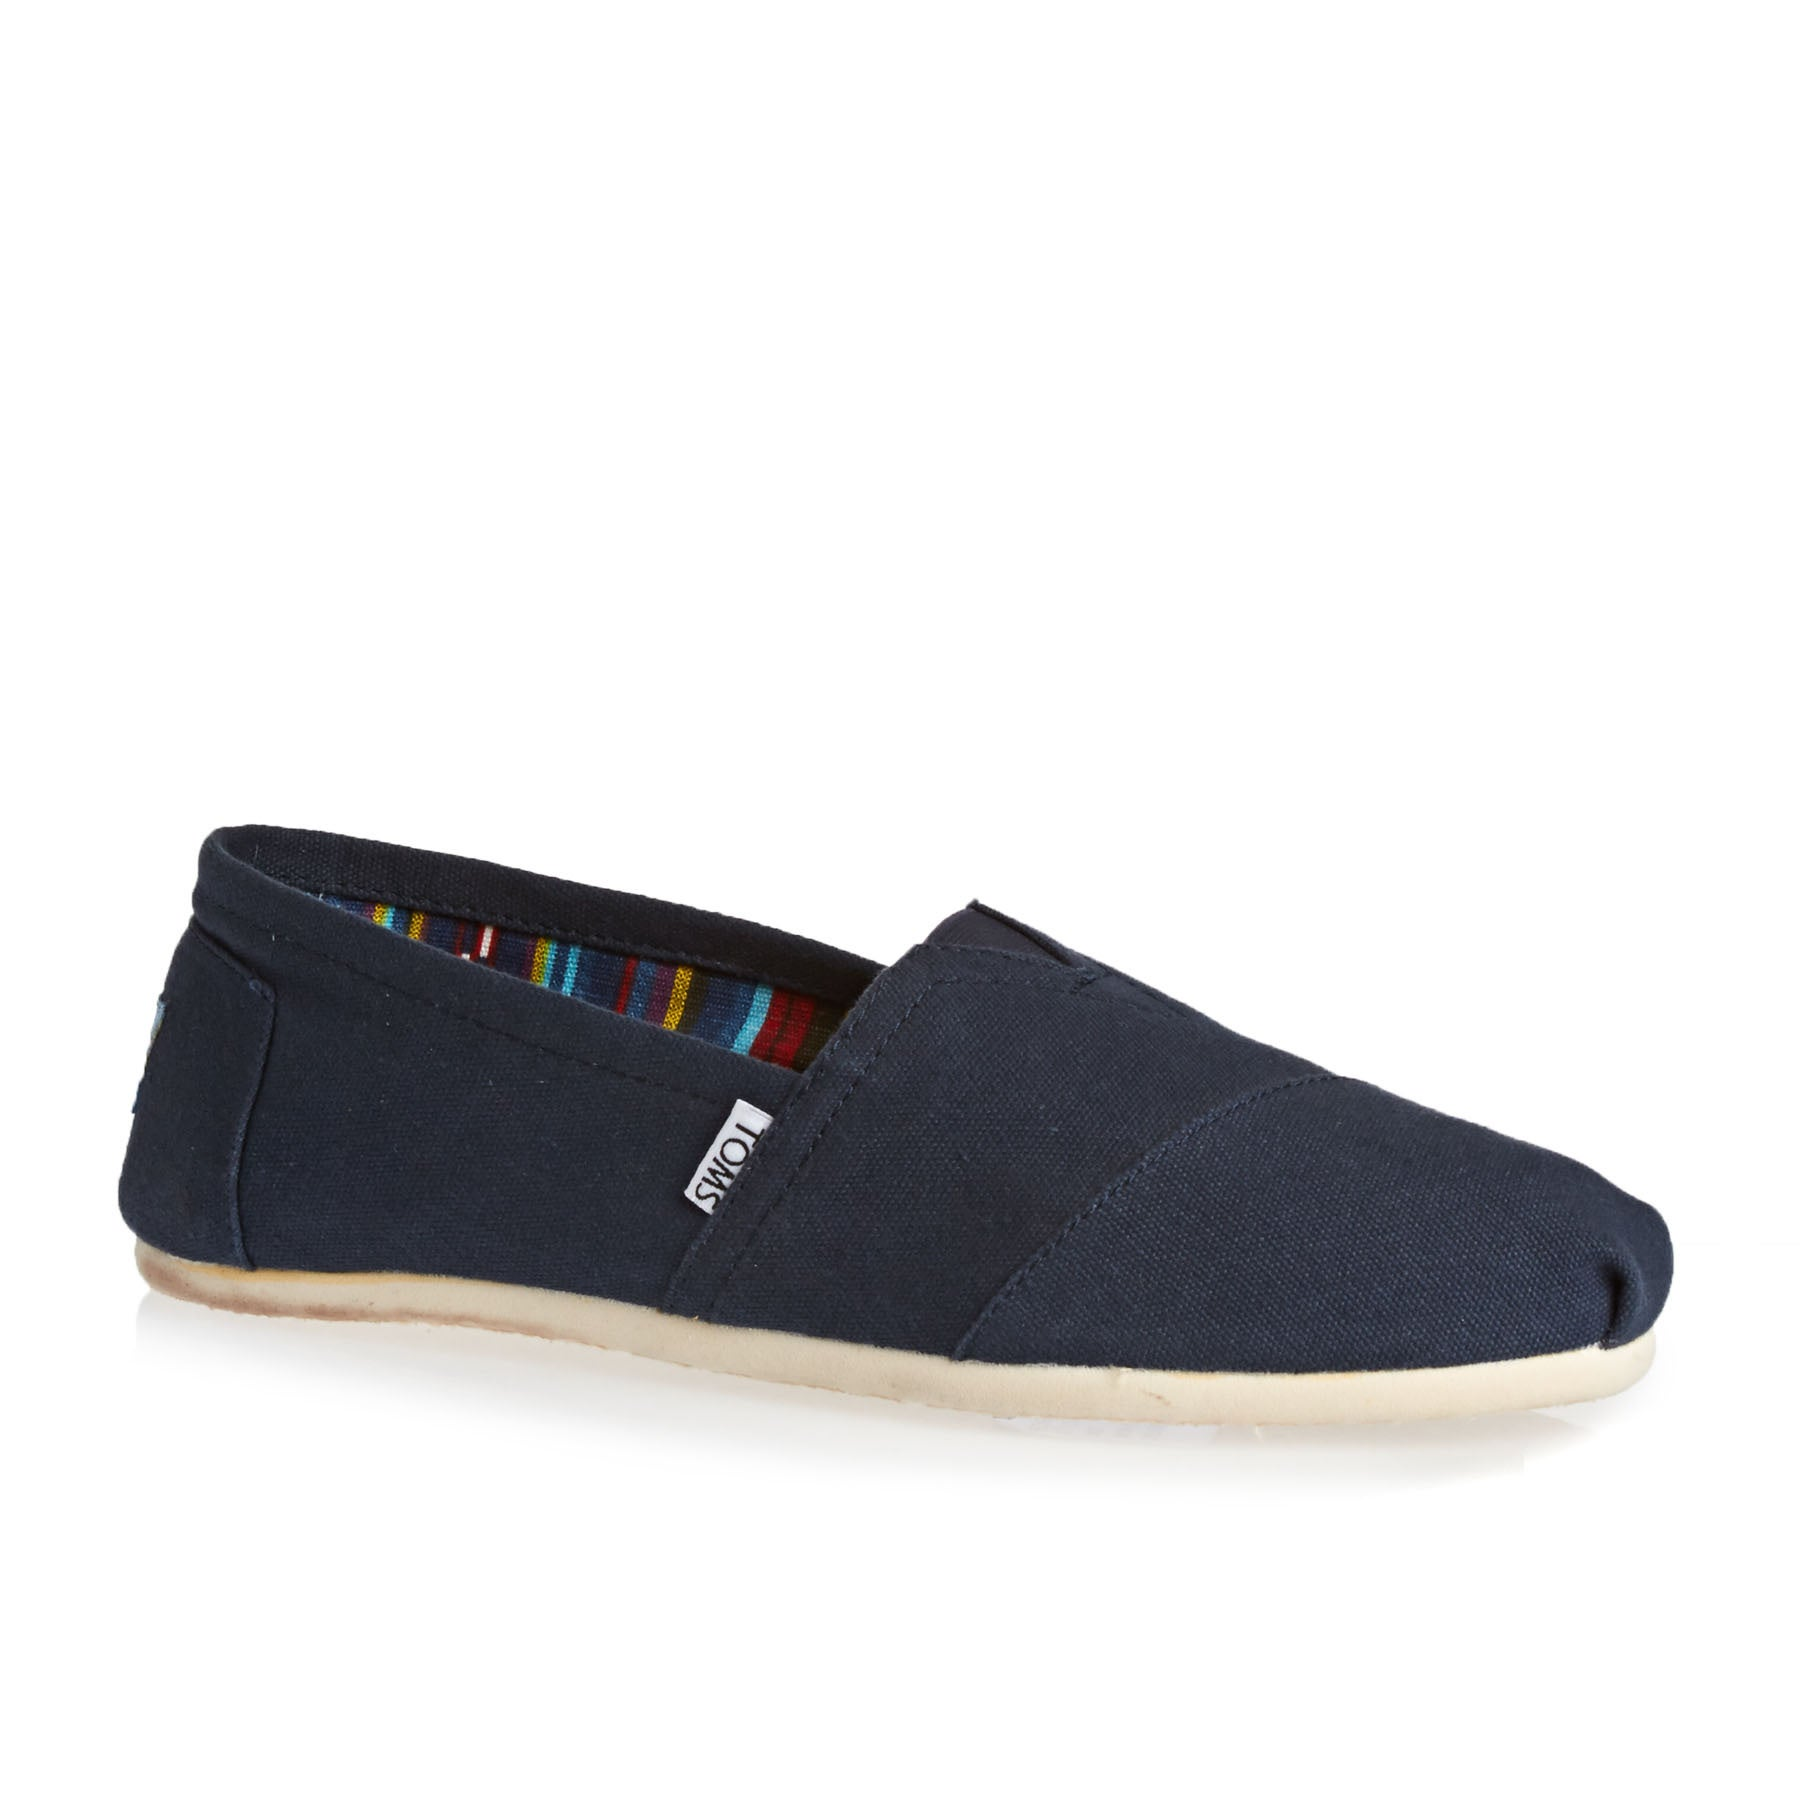 5fa284aa0861 Toms Mens Classic Alpargata Slip On Shoes available from Surfdome